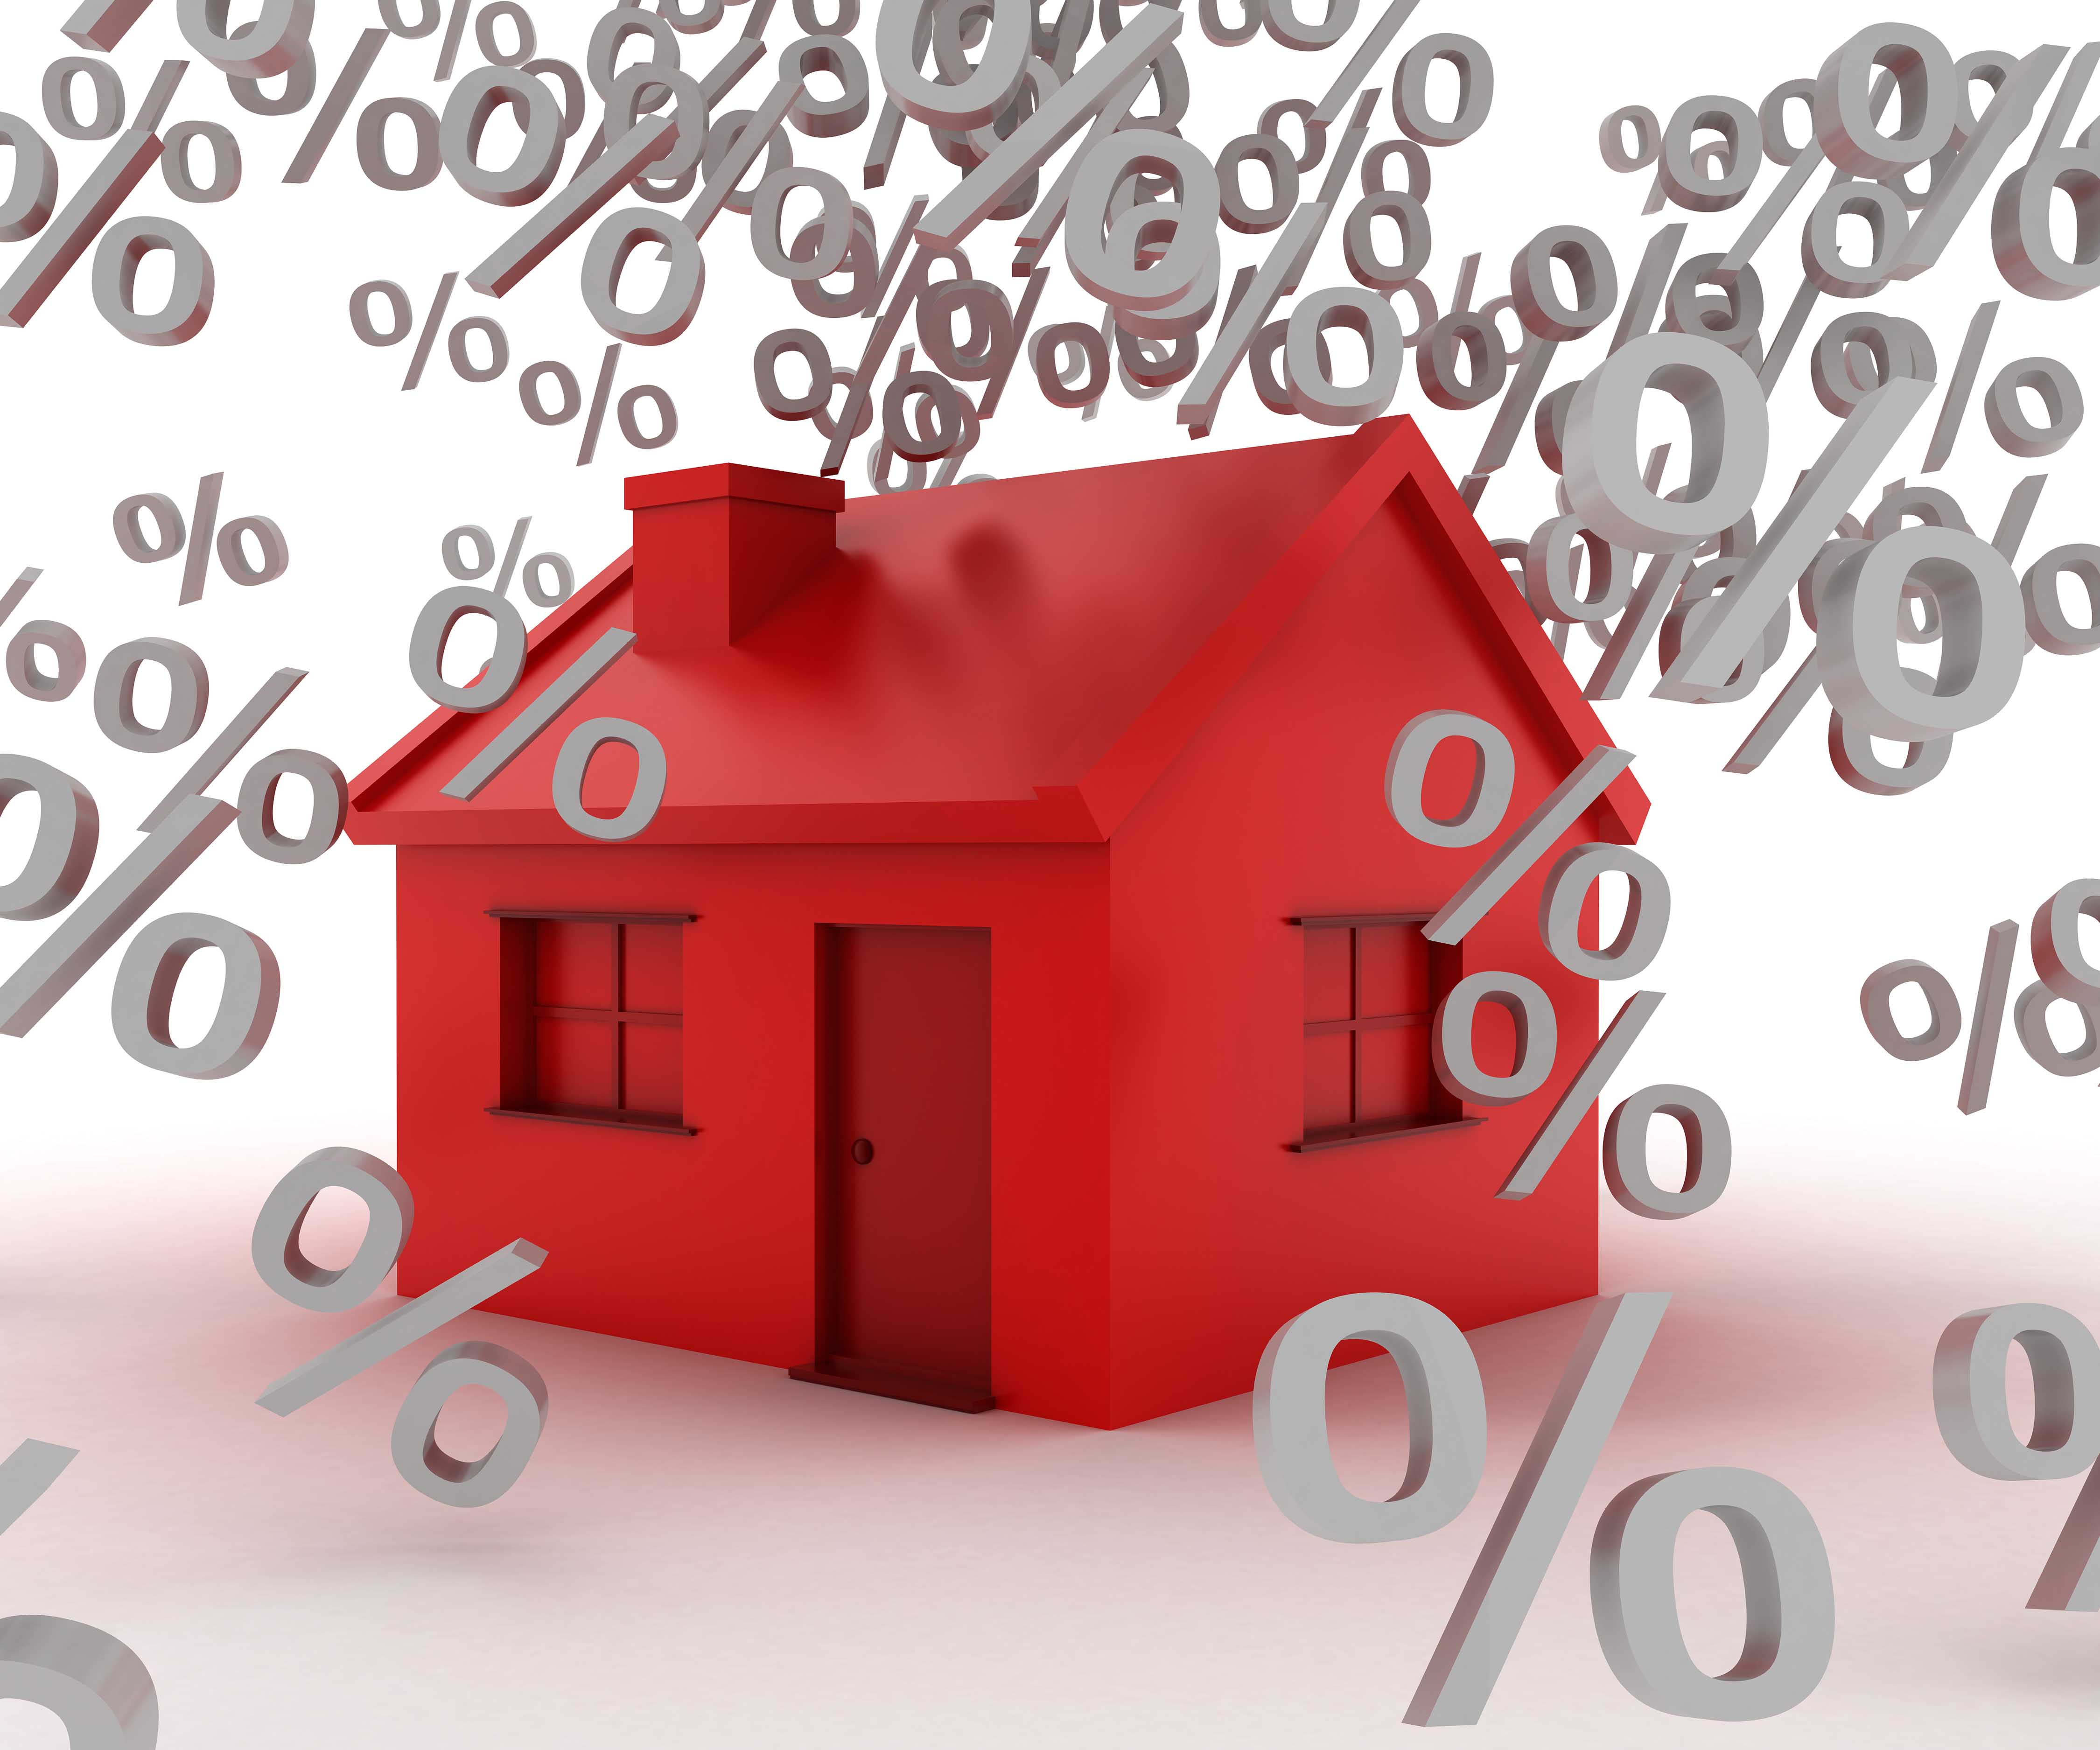 Your home and interest rates